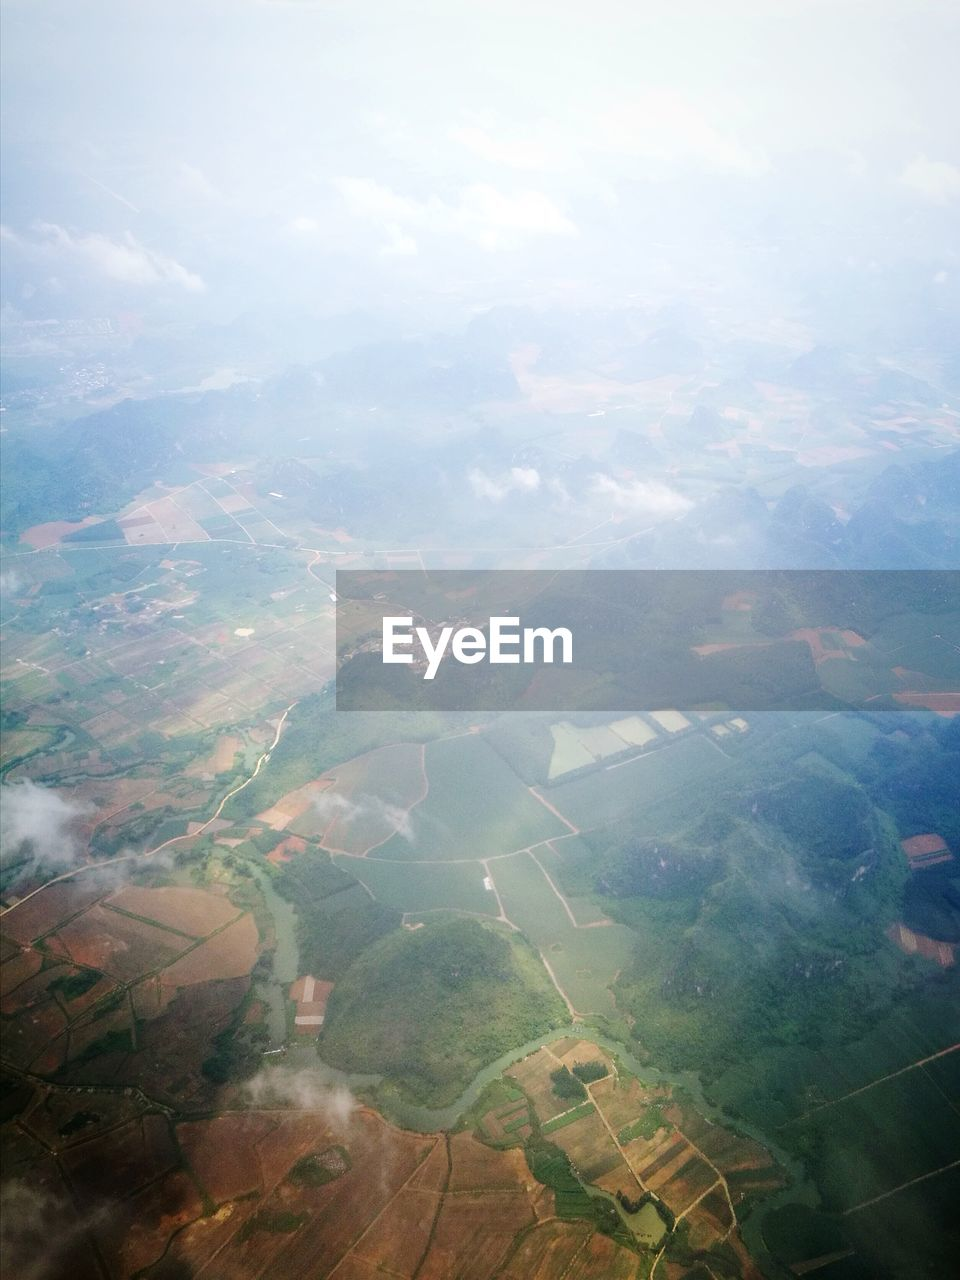 scenics - nature, environment, tranquil scene, beauty in nature, aerial view, tranquility, landscape, no people, cloud - sky, nature, sky, day, idyllic, agriculture, patchwork landscape, land, rural scene, field, outdoors, mountain, view into land